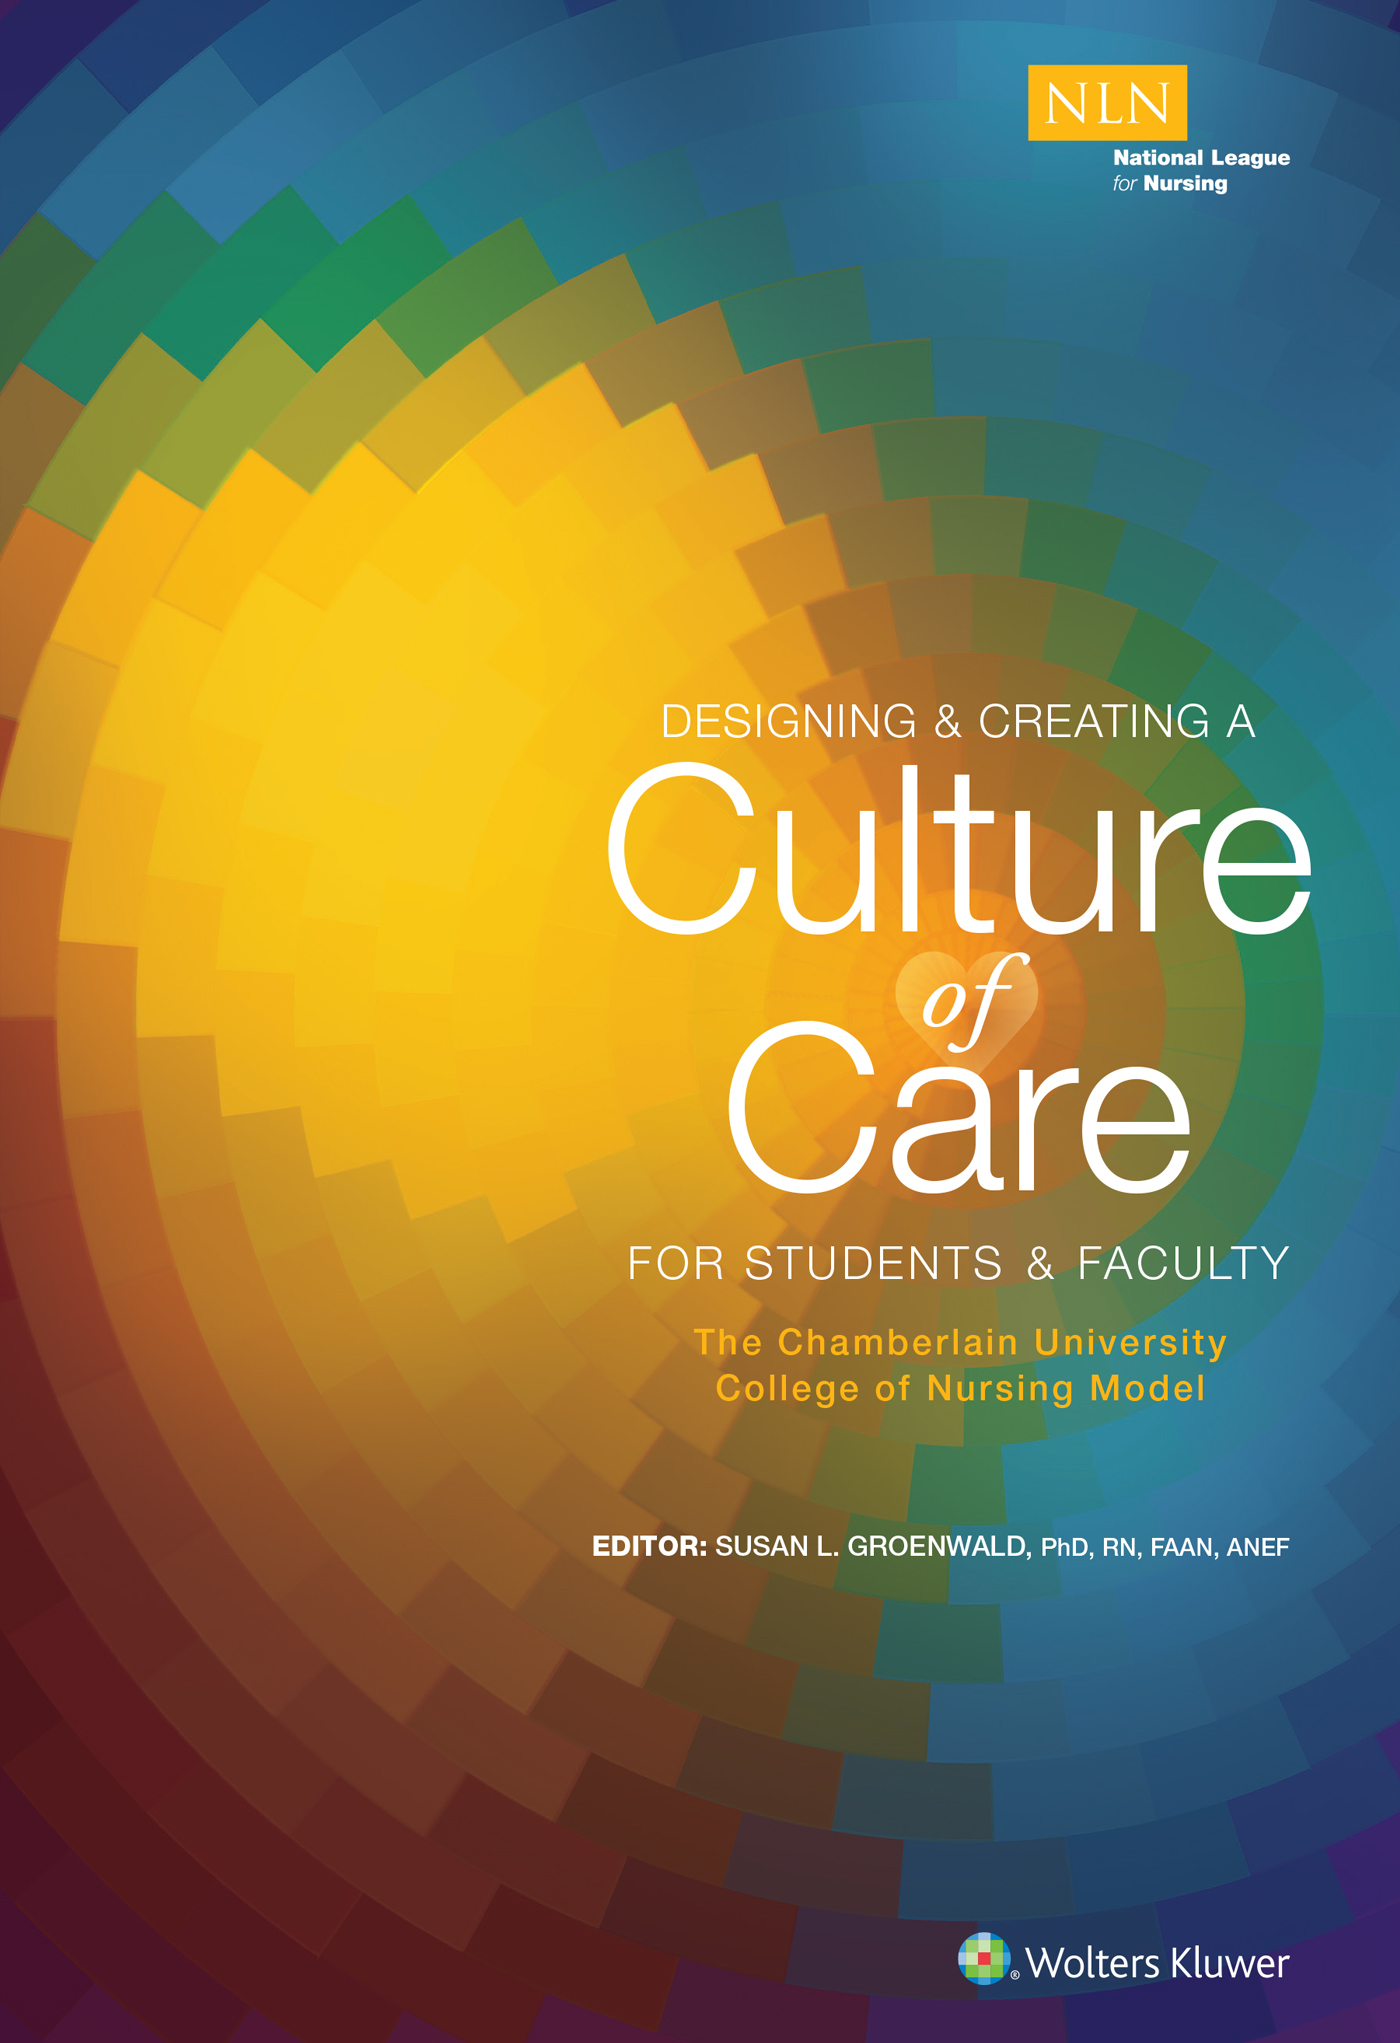 Creating a Culture of Caring: The Chamberlain College of        Nursing Model